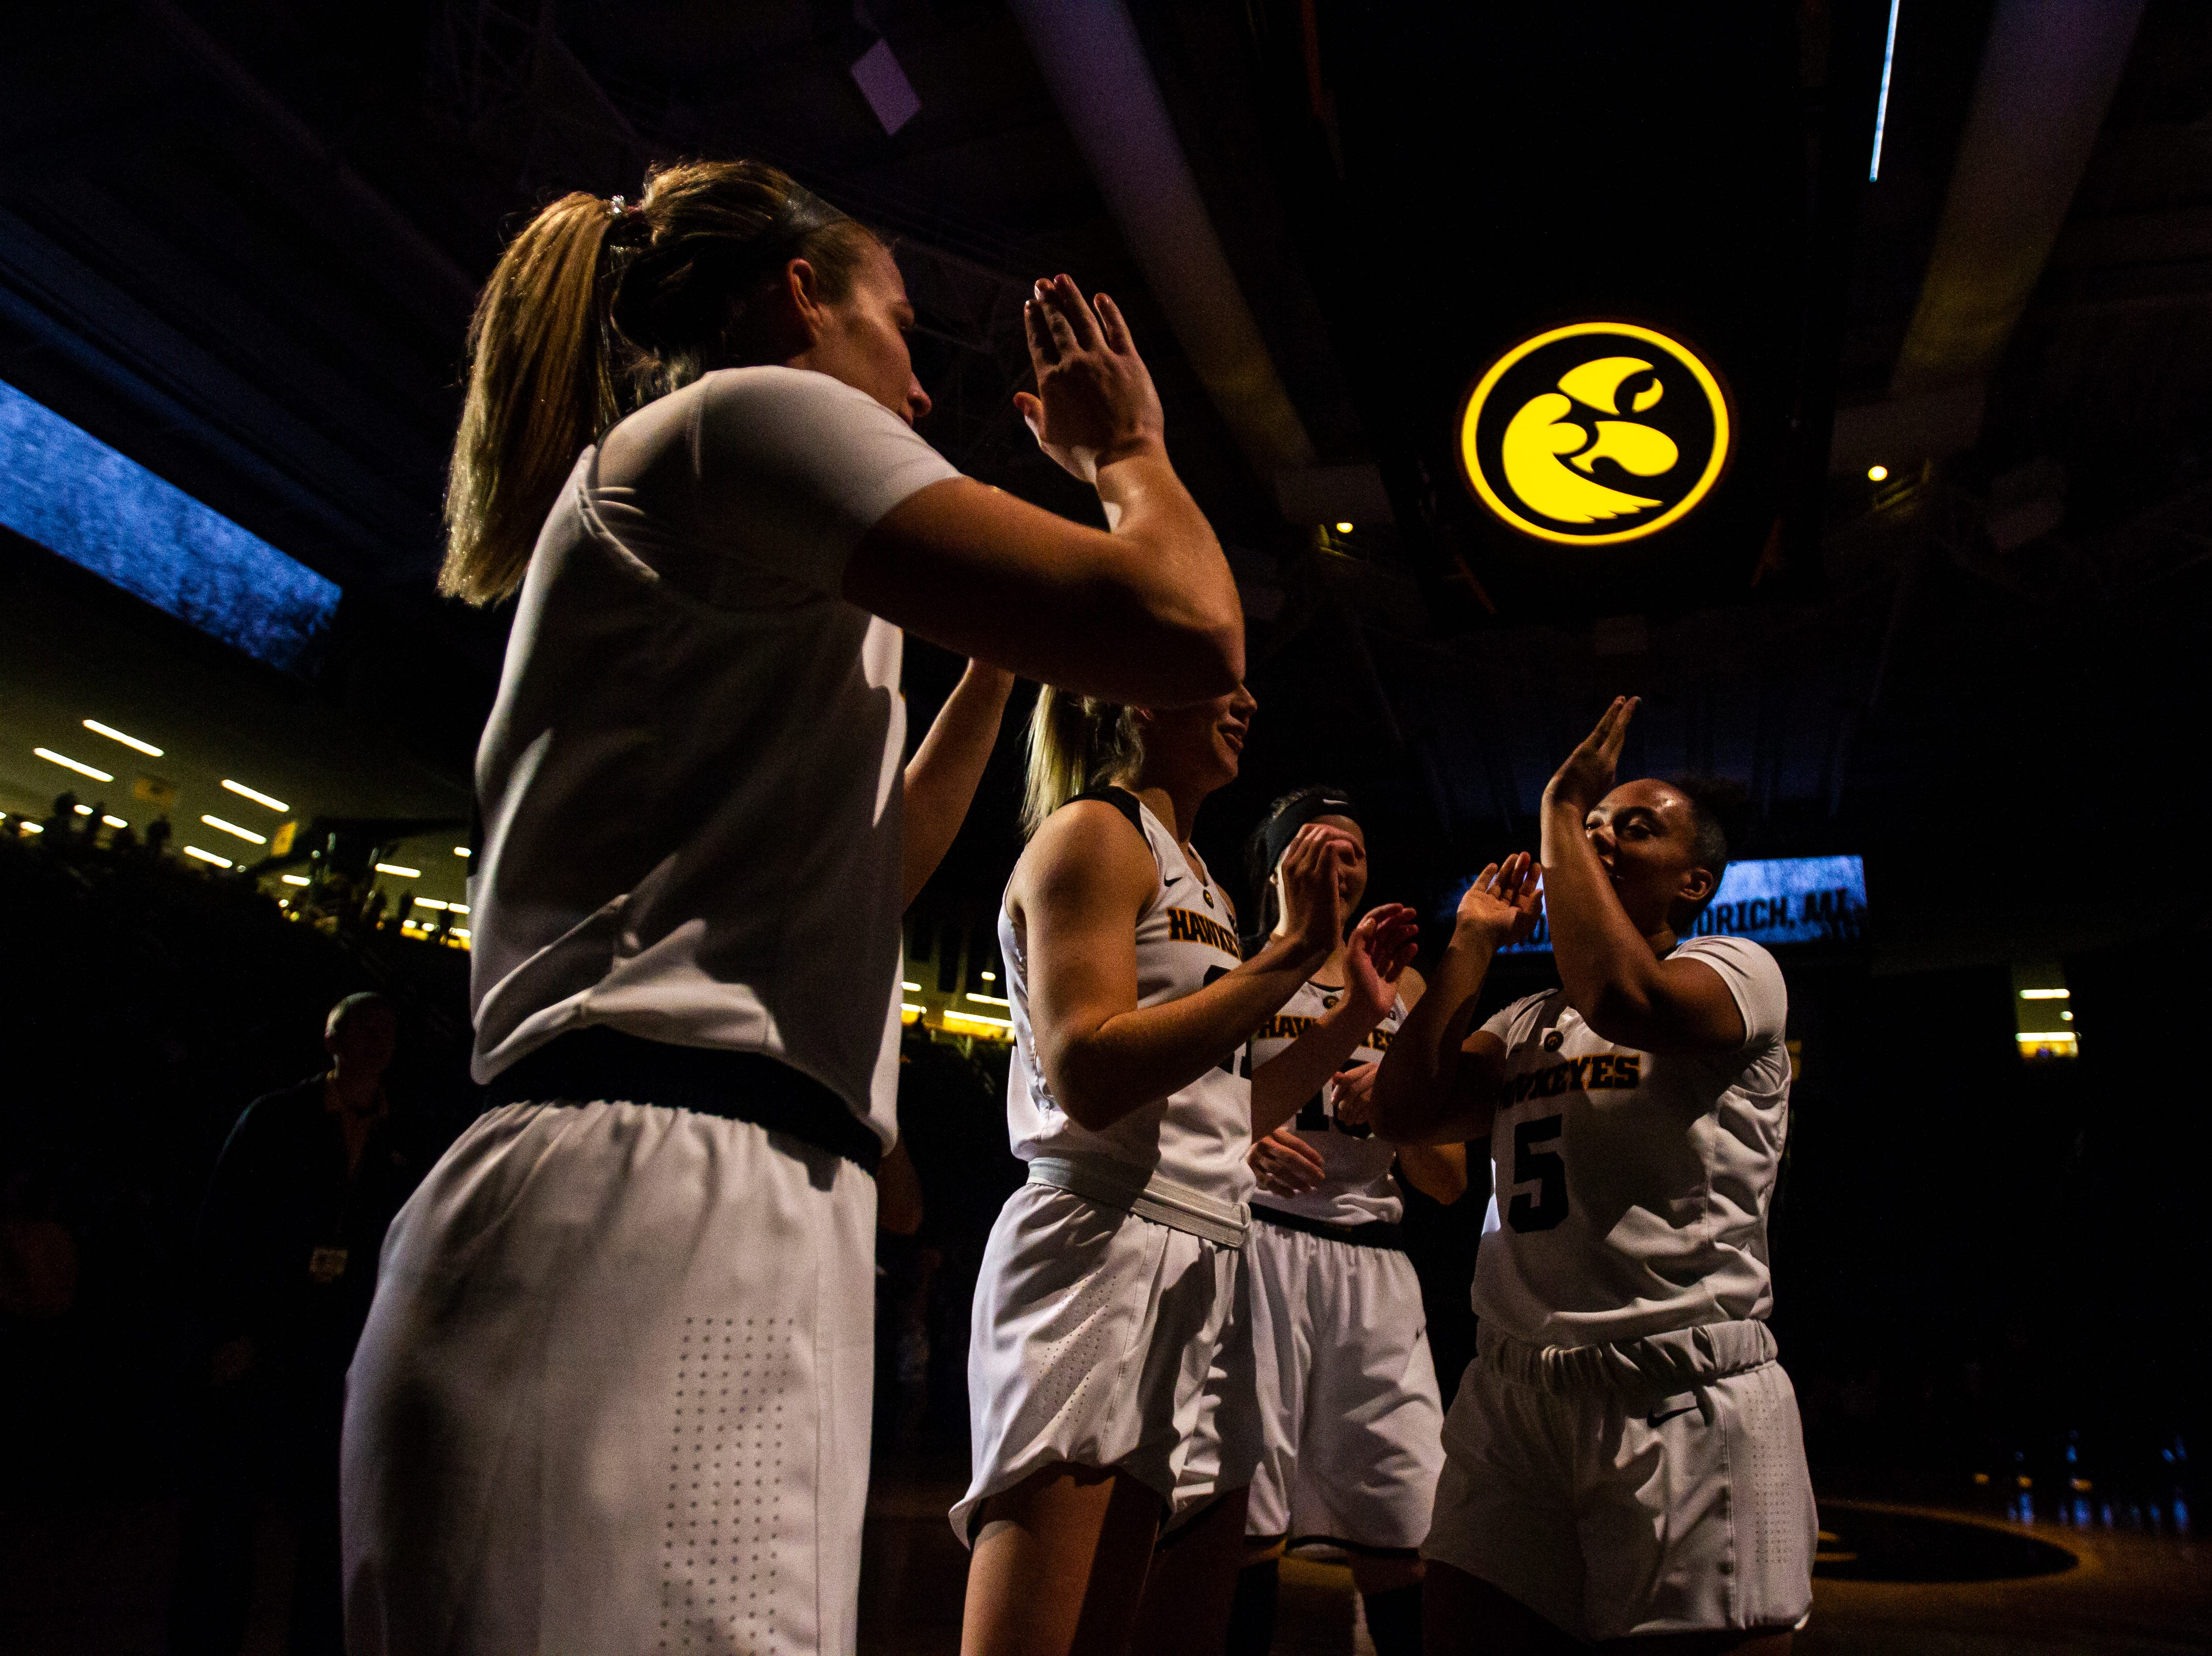 Iowa guard Alexis Sevillian (5) high-fives Hannah Stewart (21) during introductions before an NCAA women's basketball game on Saturday, Nov. 17, 2018, at Carver-Hawkeye Arena in Iowa City.